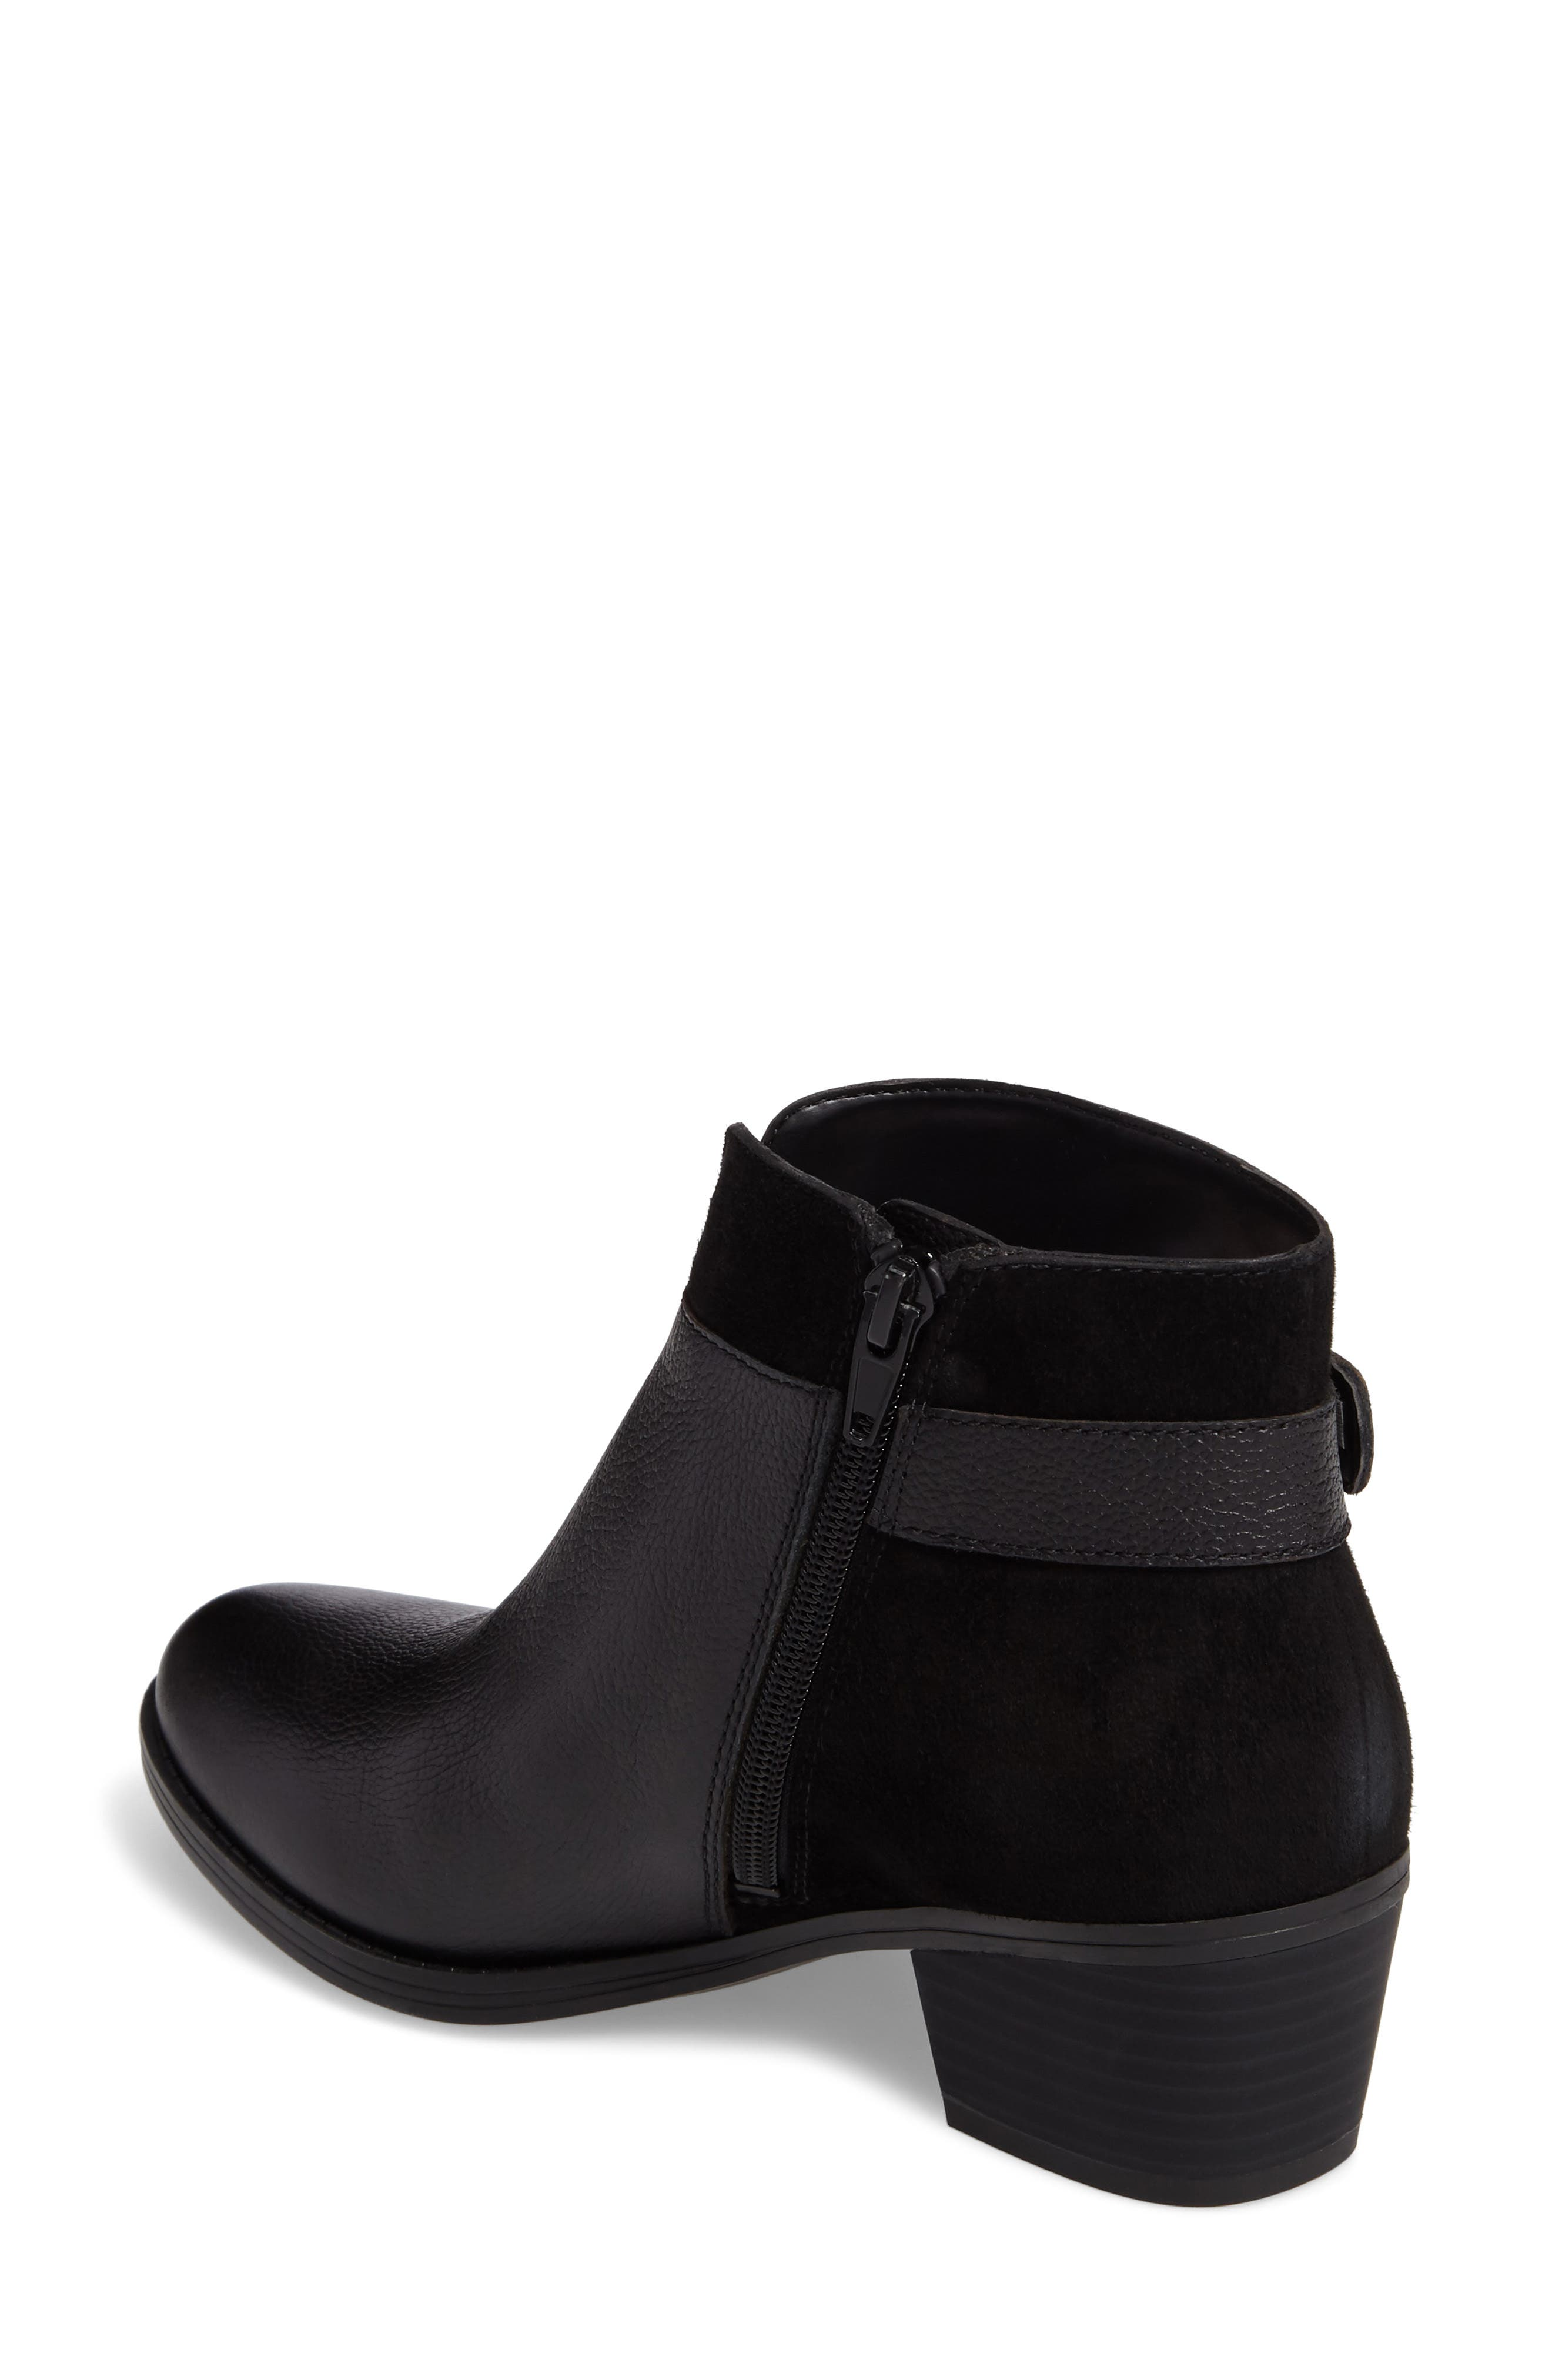 Wanya Buckle Bootie,                             Alternate thumbnail 2, color,                             Black Leather